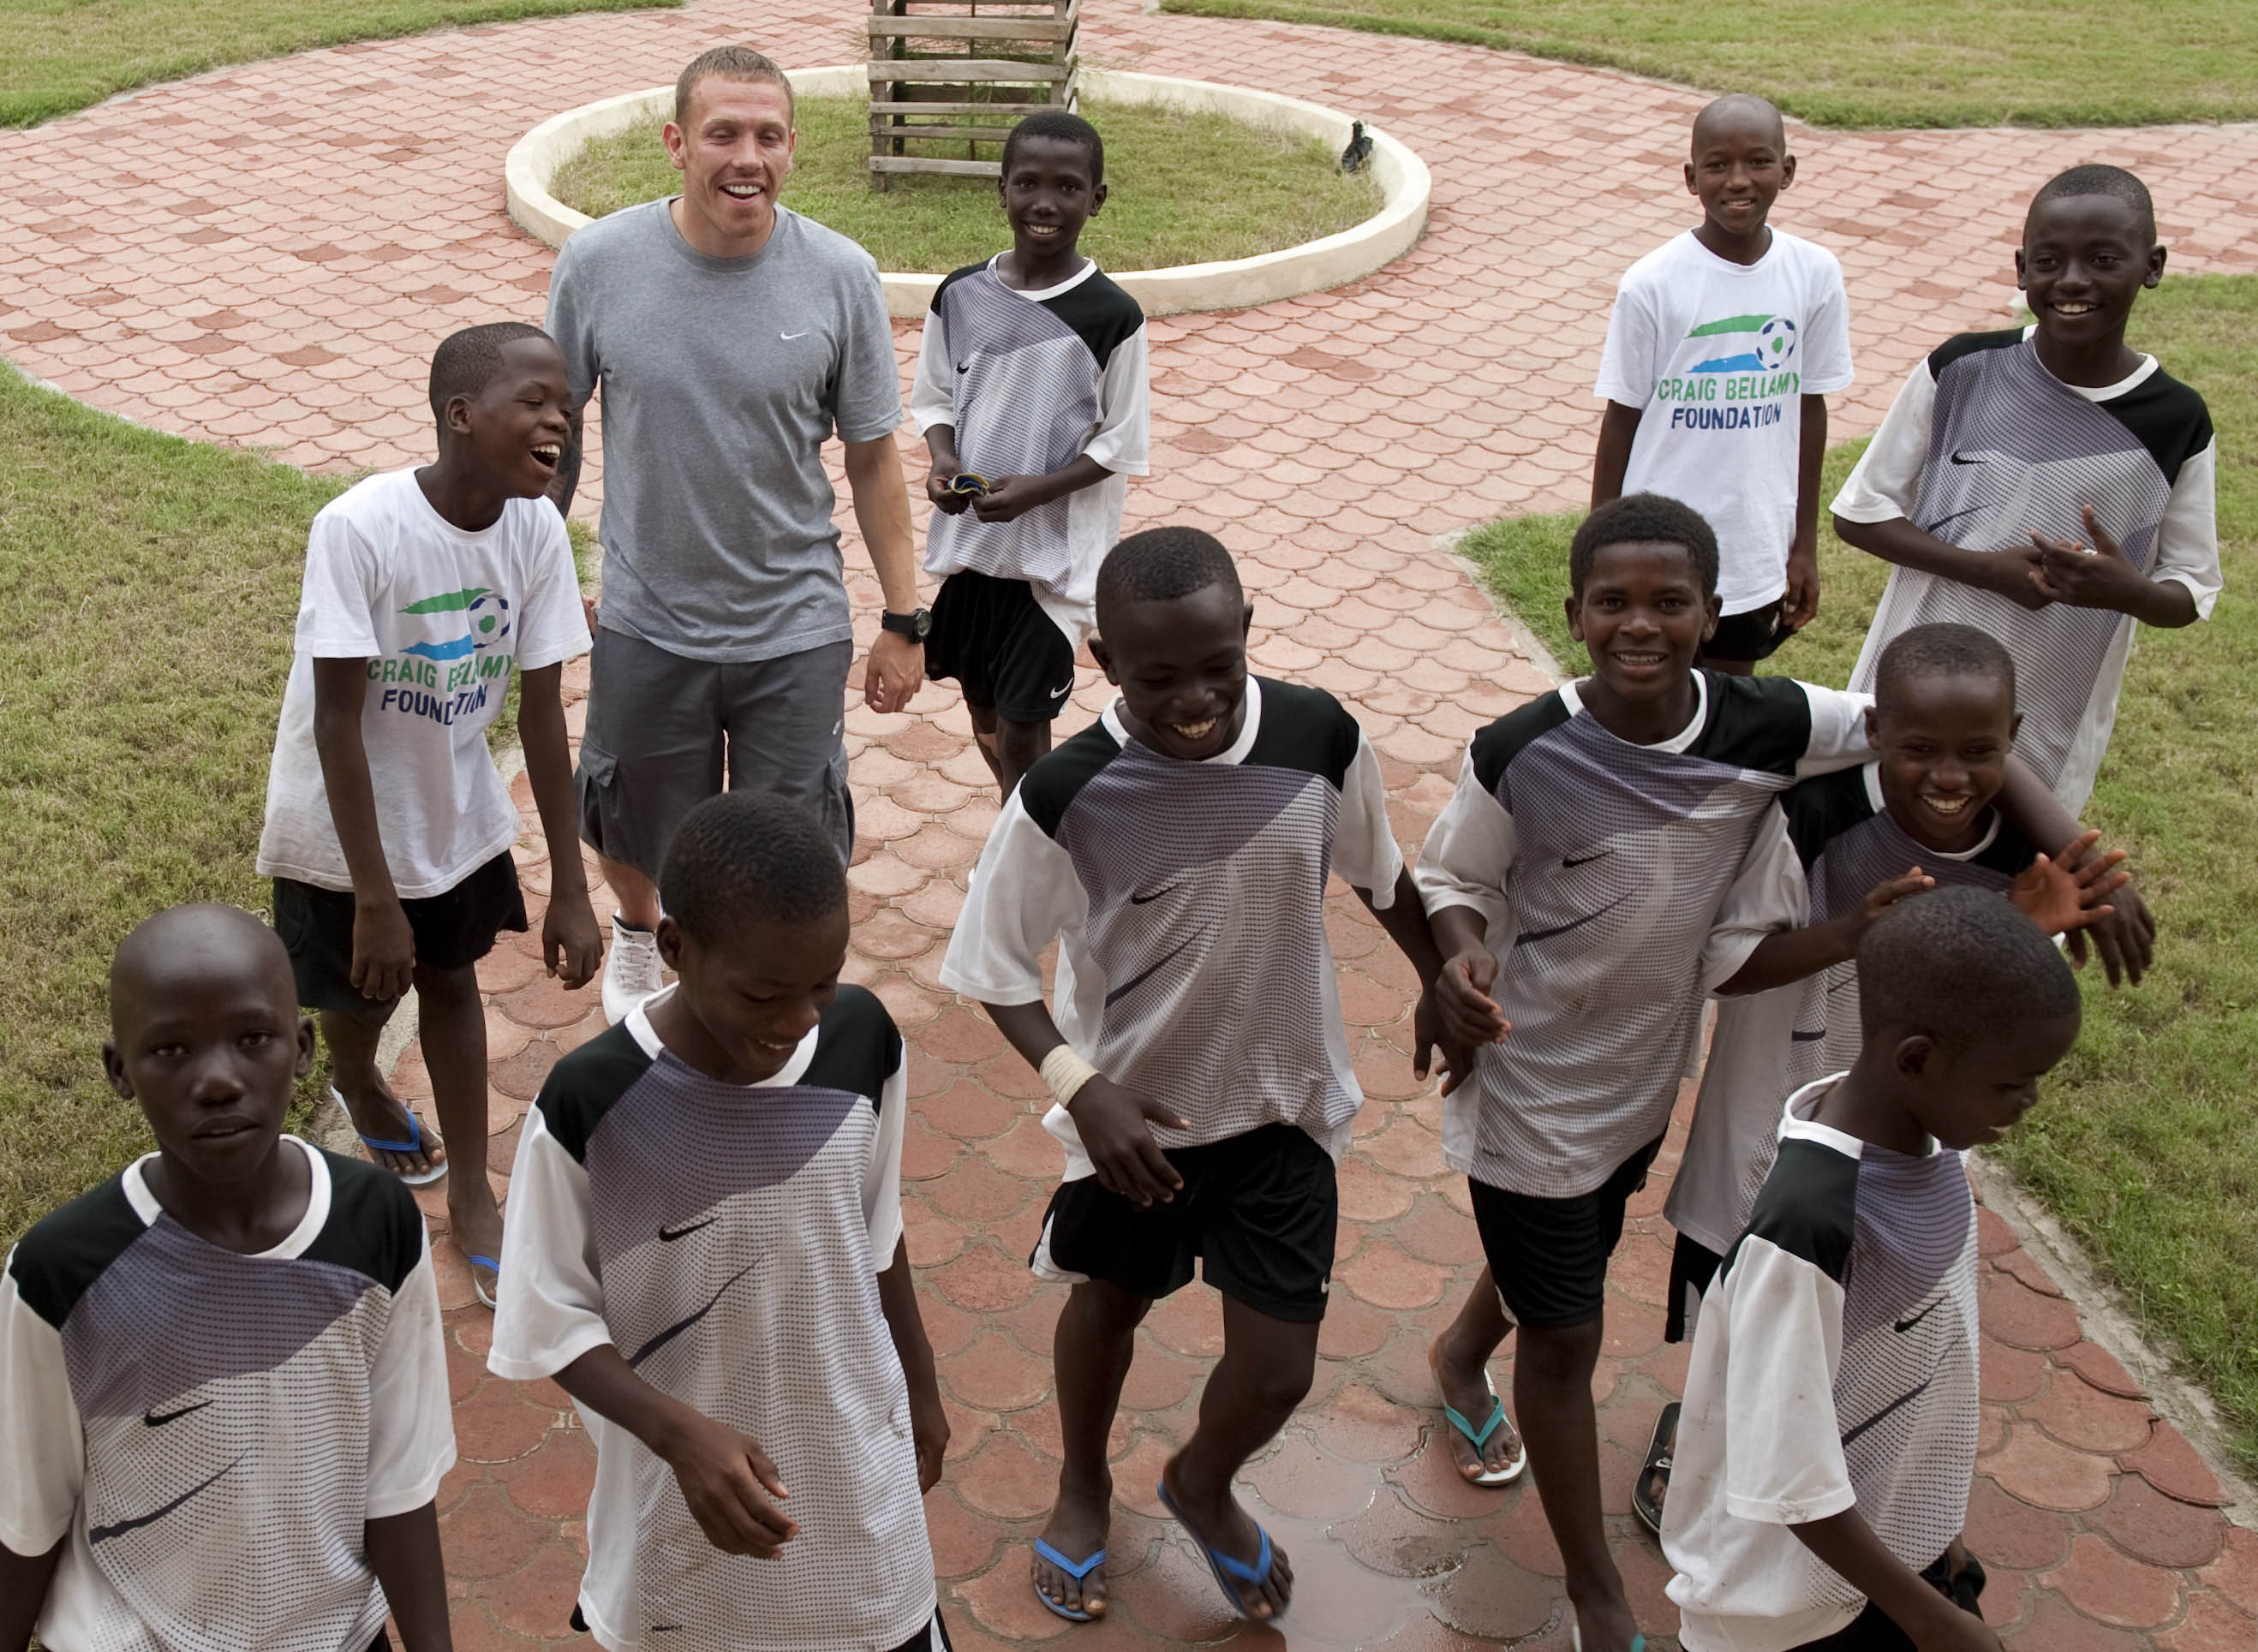 Craig Bellamy and the boys from his Sierra Leone foundation at the Right to Dream academy near Accra in Ghana, West Africa. (Photograph by